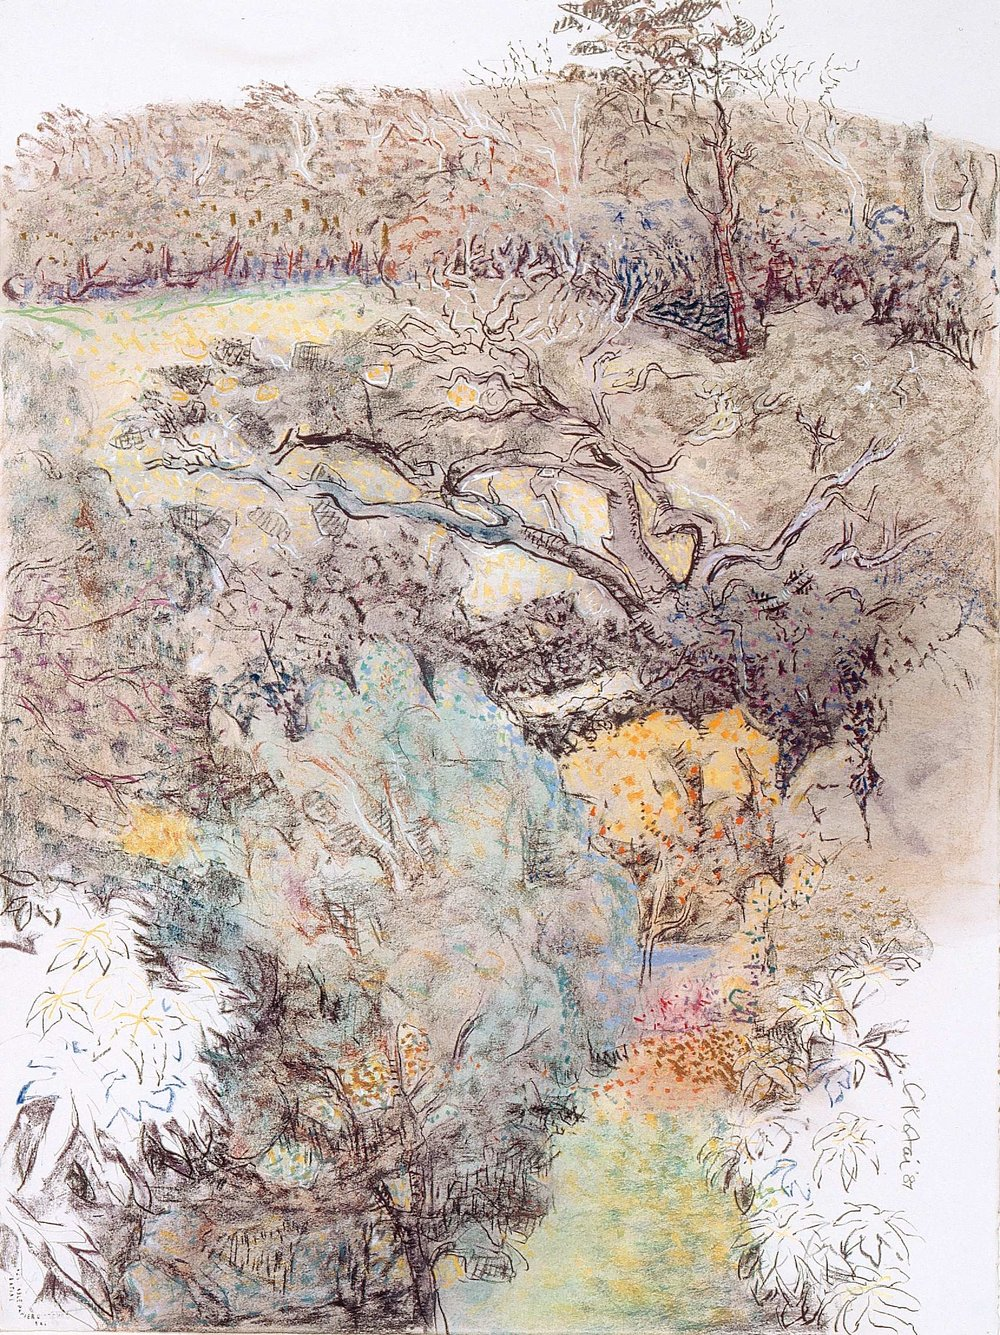 Chinese Hill 1987, pastel on Arches paper, 76 x 57cm. Private Collection